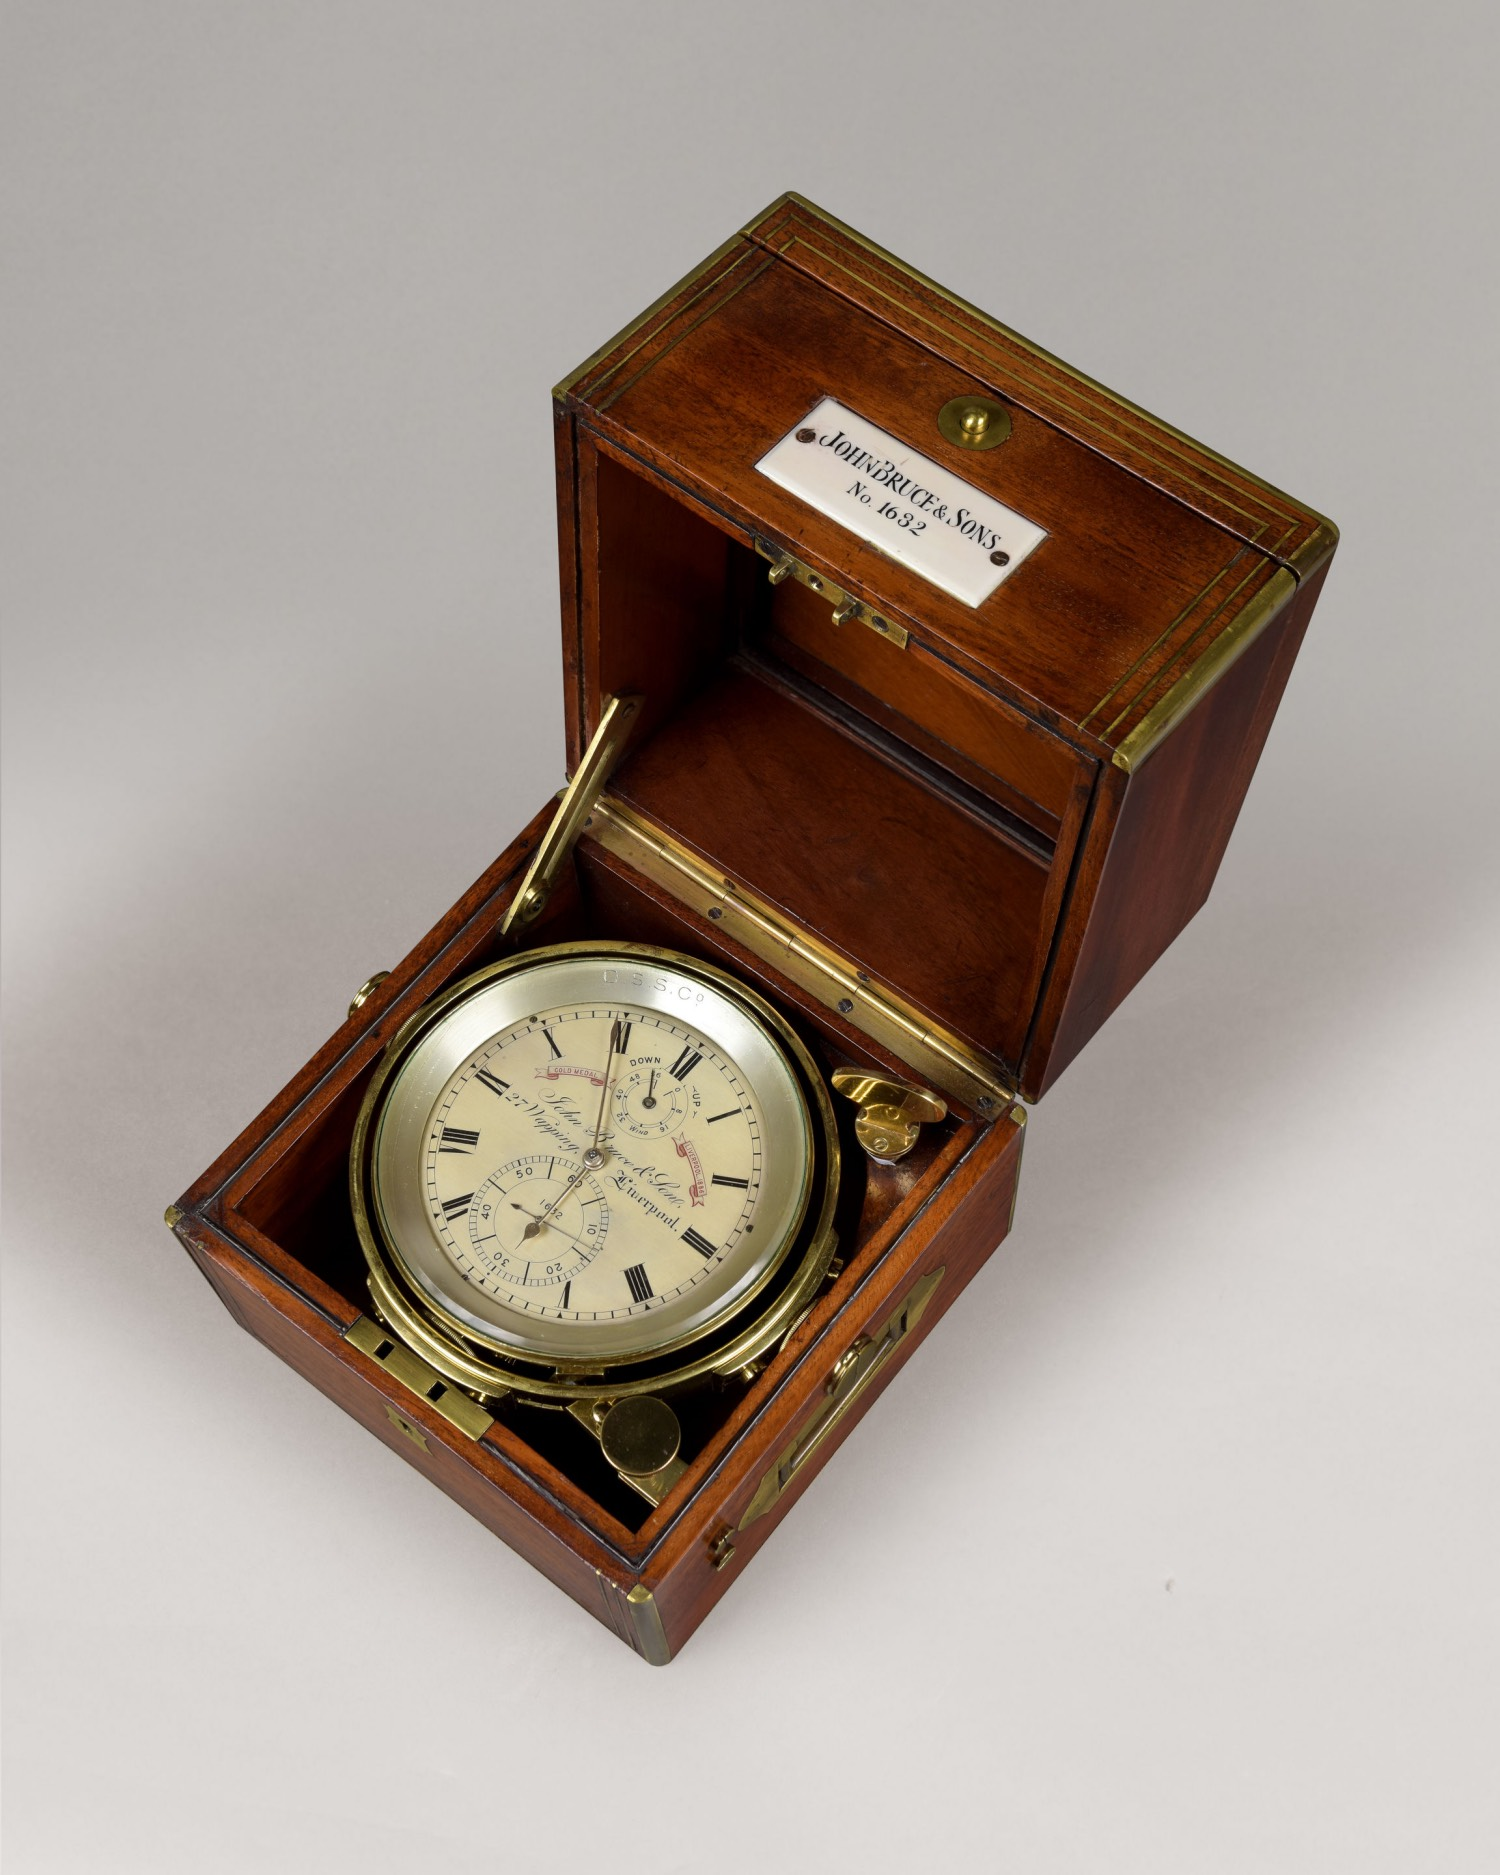 JOHN BRUCE & SONS, 27 WAPPING, N° 1632. A FINE 2-DAY MARINE CHRONOMETER.